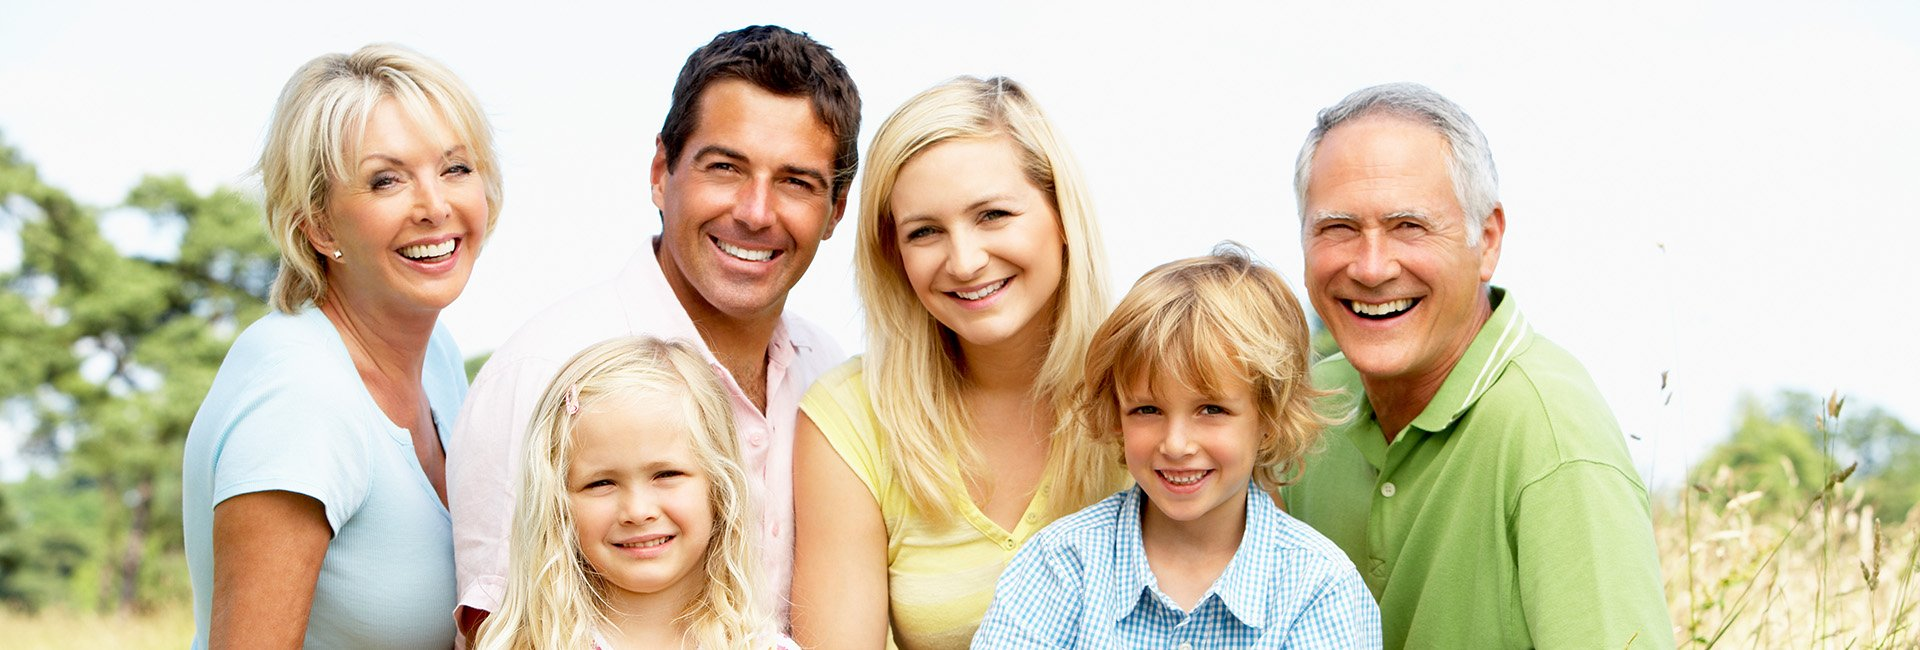 general and family dentistry with a Santa Barbara dentist Montecito